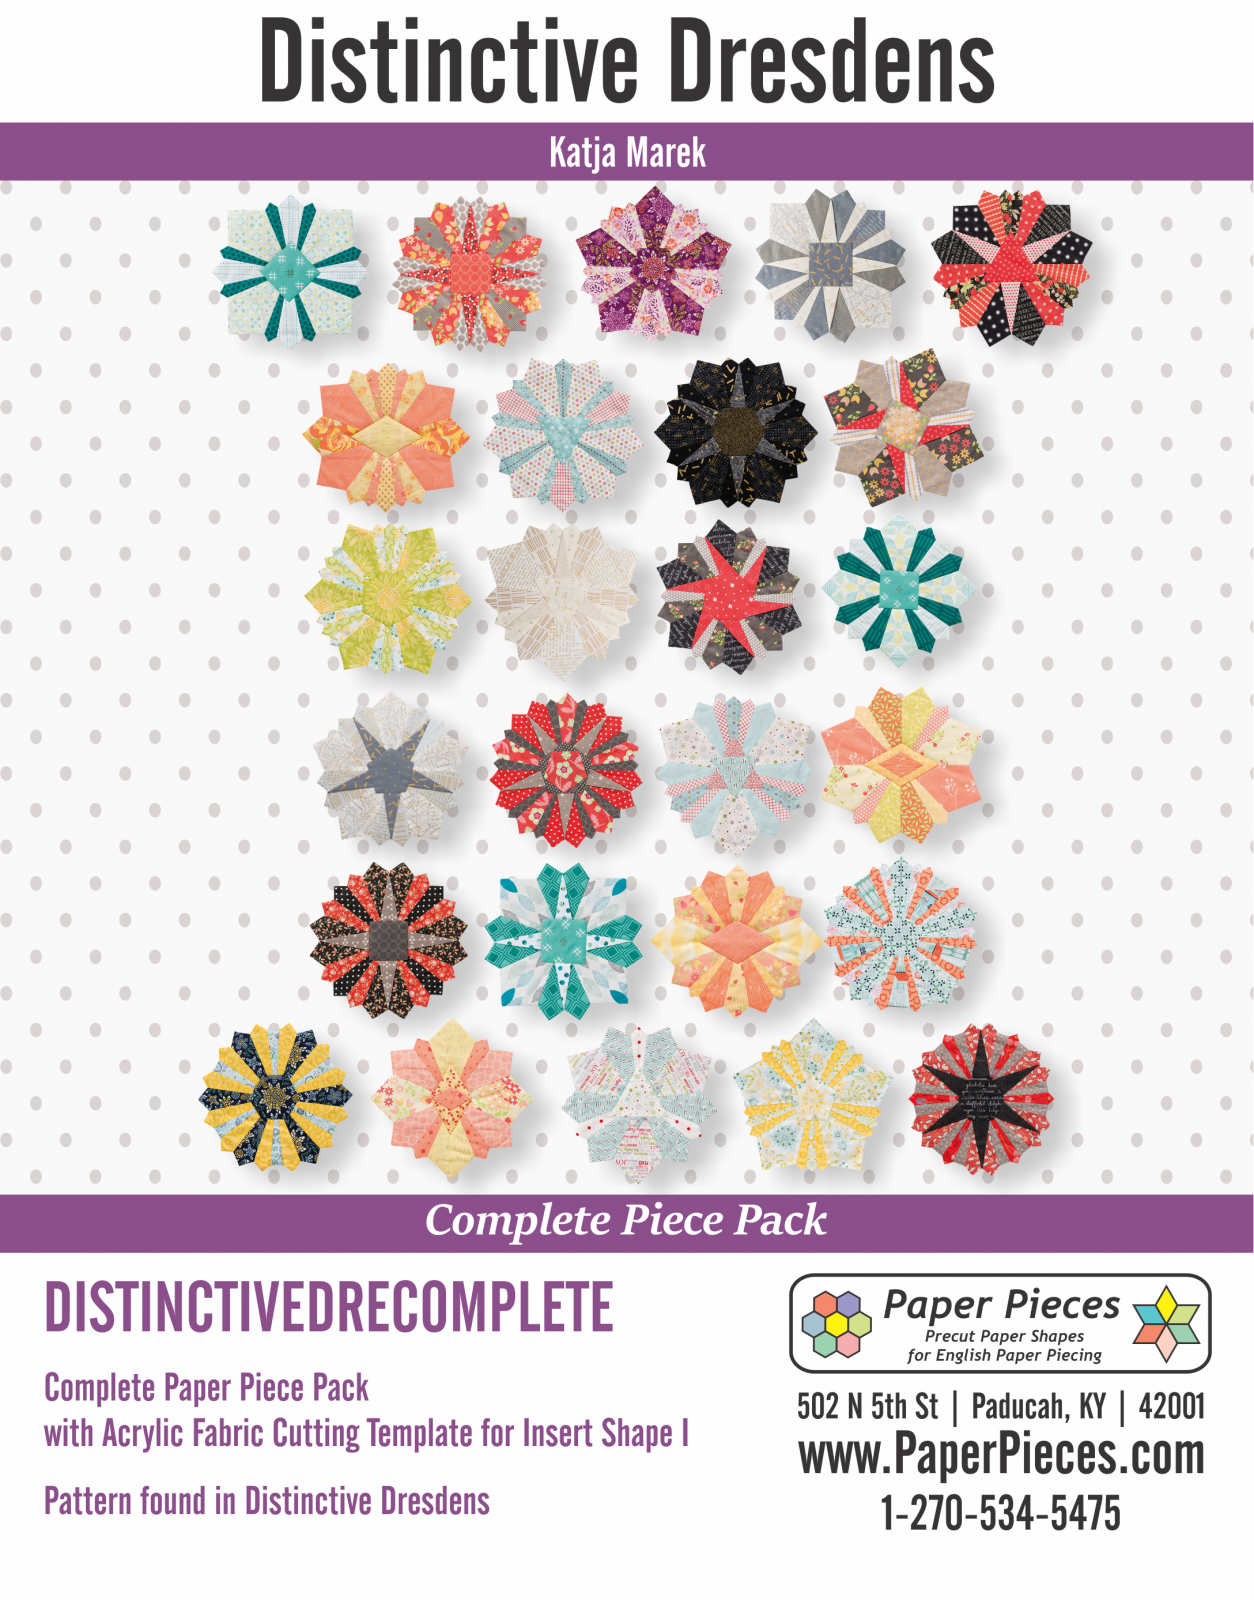 Distinctive Dresdens Complete Paper Pack and Acrylic Template I